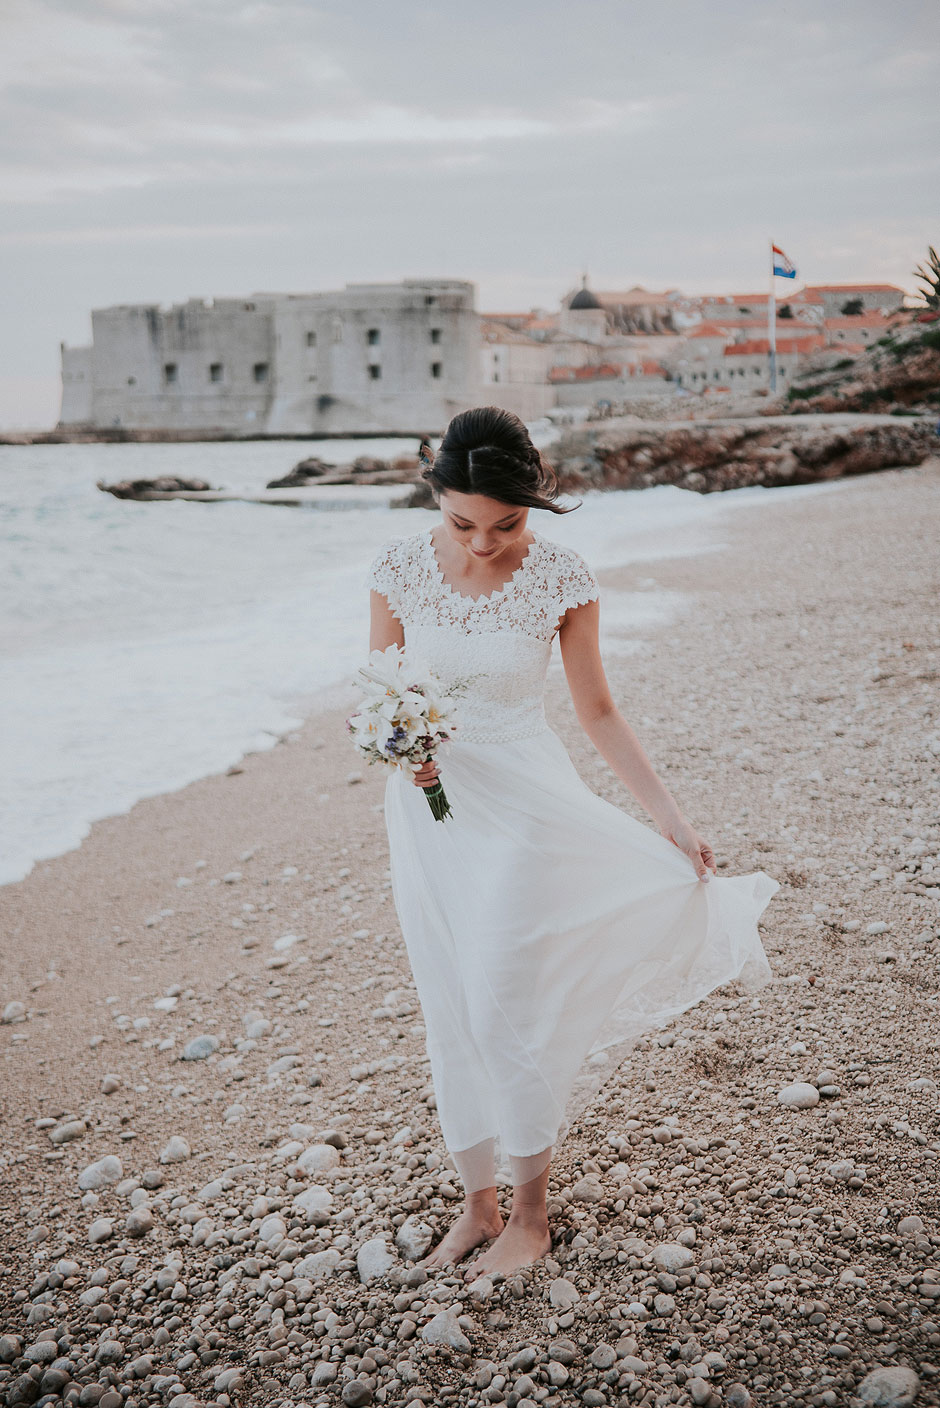 Bride in dubrovnik